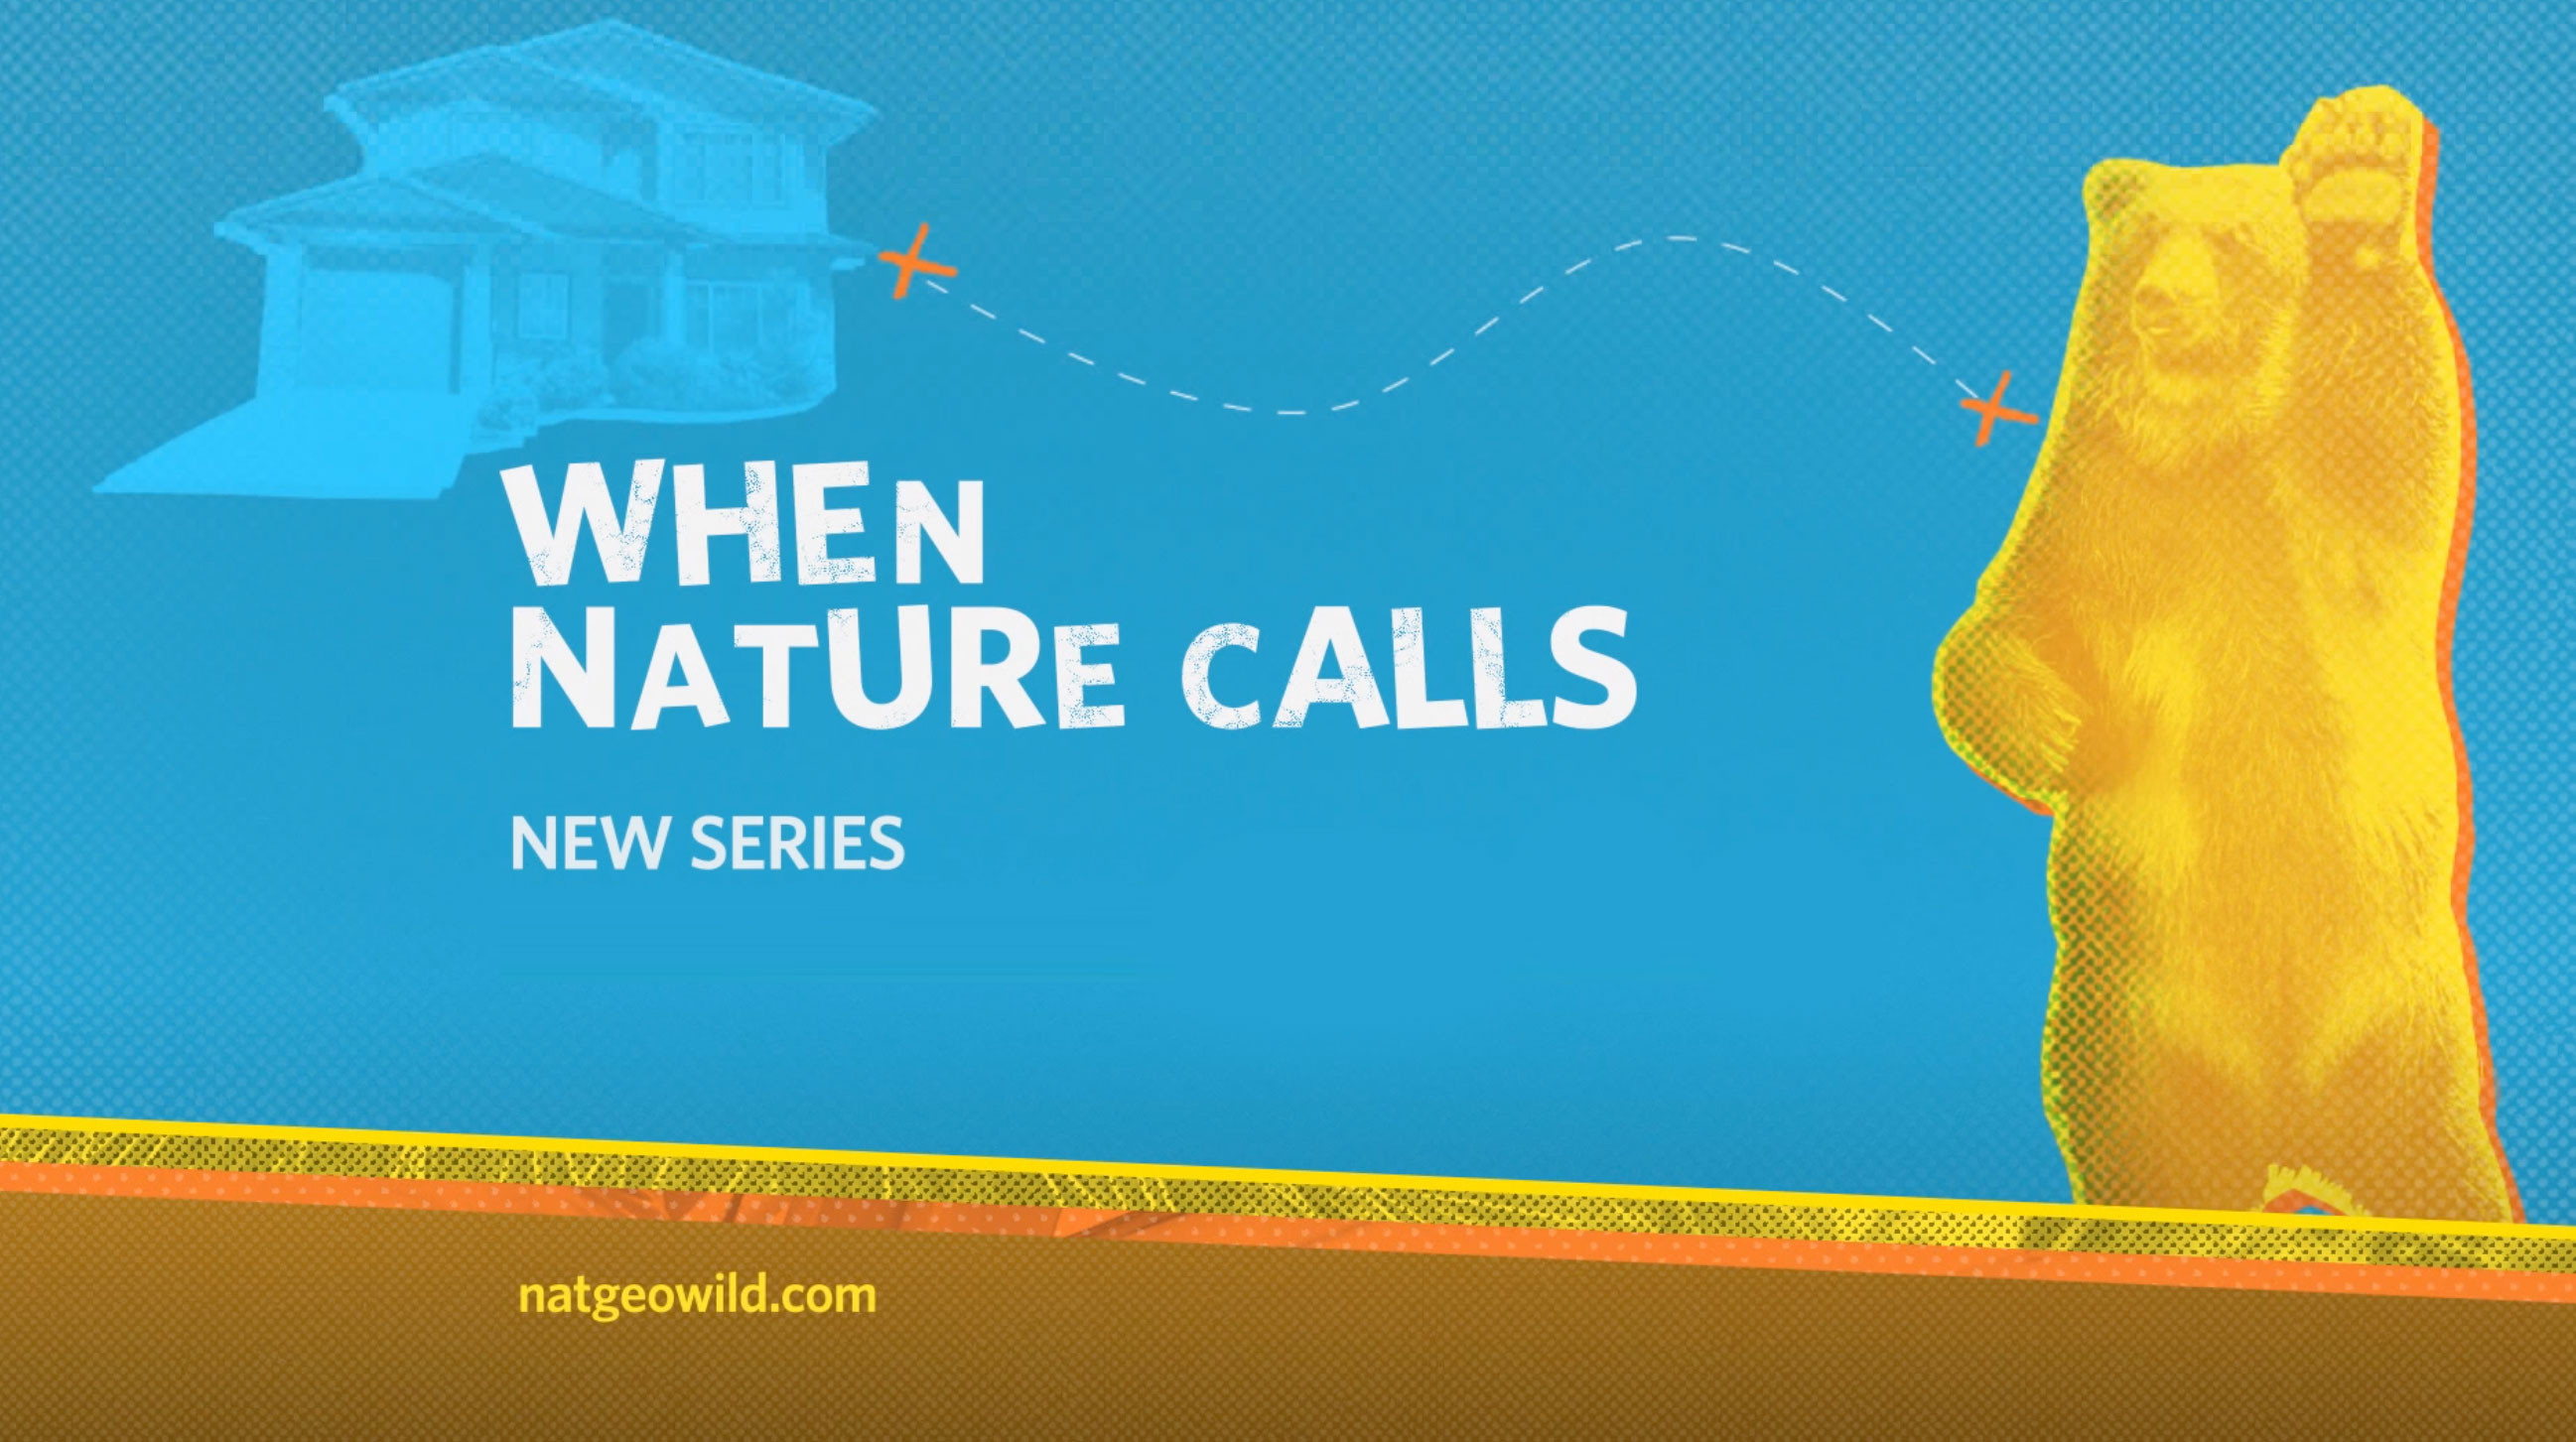 When Nature Calls on NatGeoWild